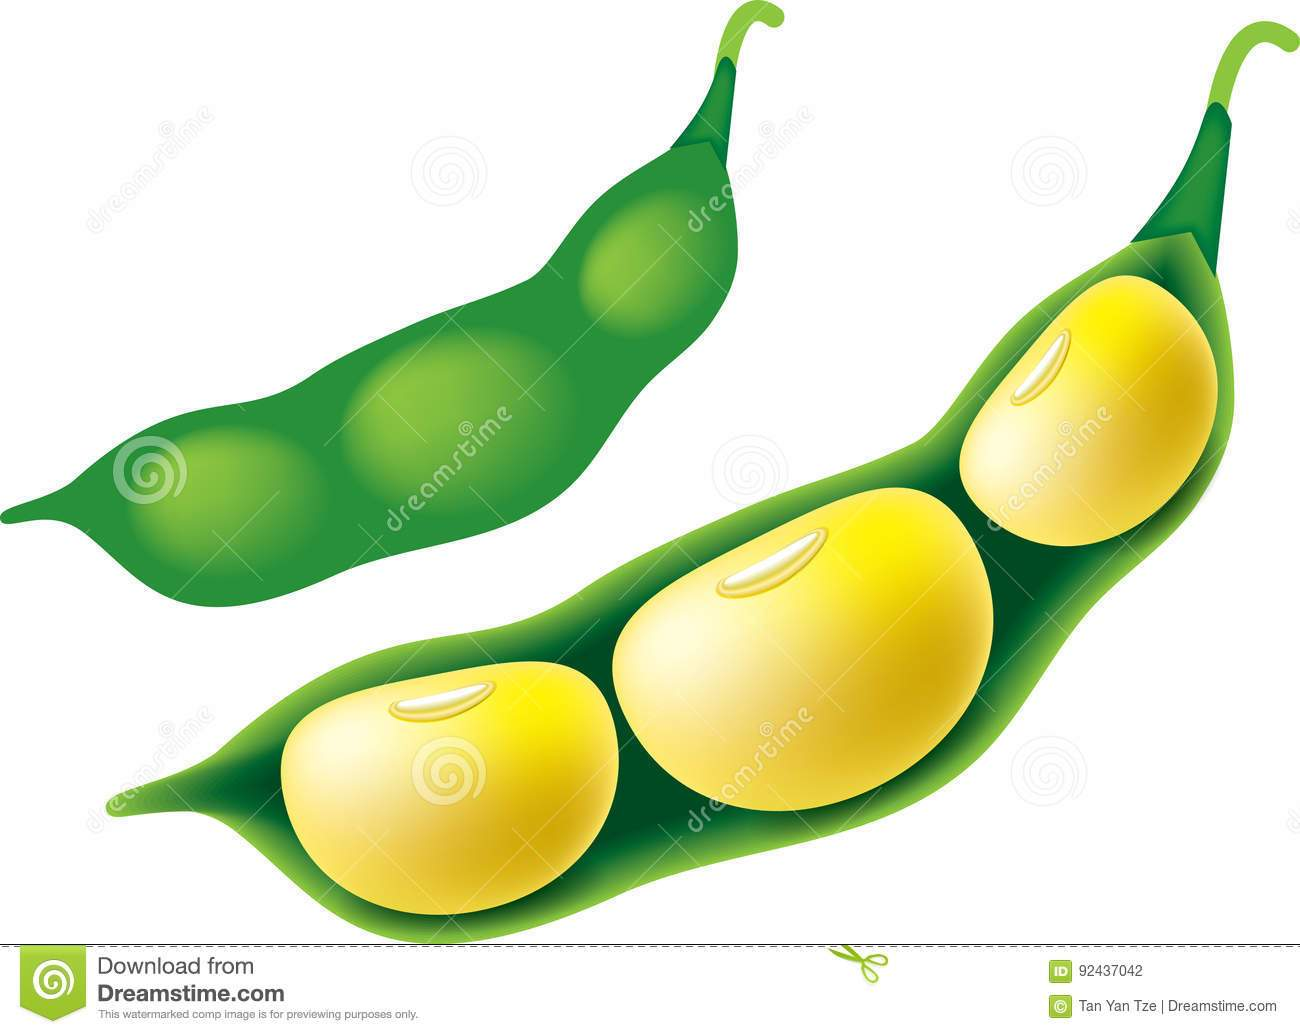 Soybeans clipart banner library library Soybeans clipart 3 » Clipart Portal banner library library